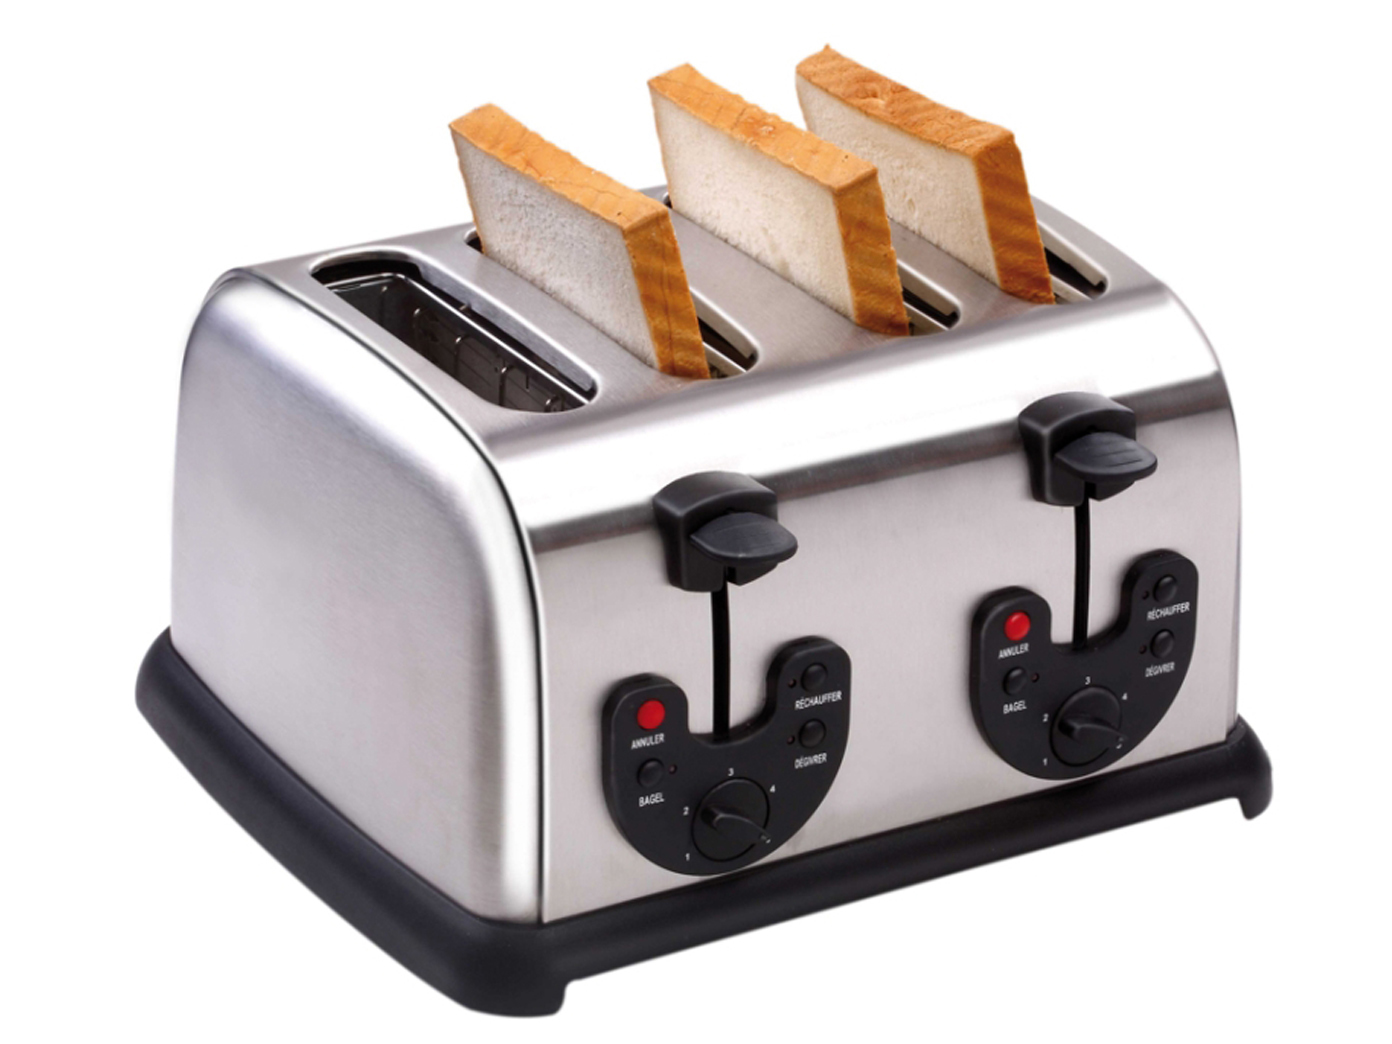 4 scheiben edelstahl profi toaster toastautomat 4 schlitz 145 1750 watt ebay. Black Bedroom Furniture Sets. Home Design Ideas